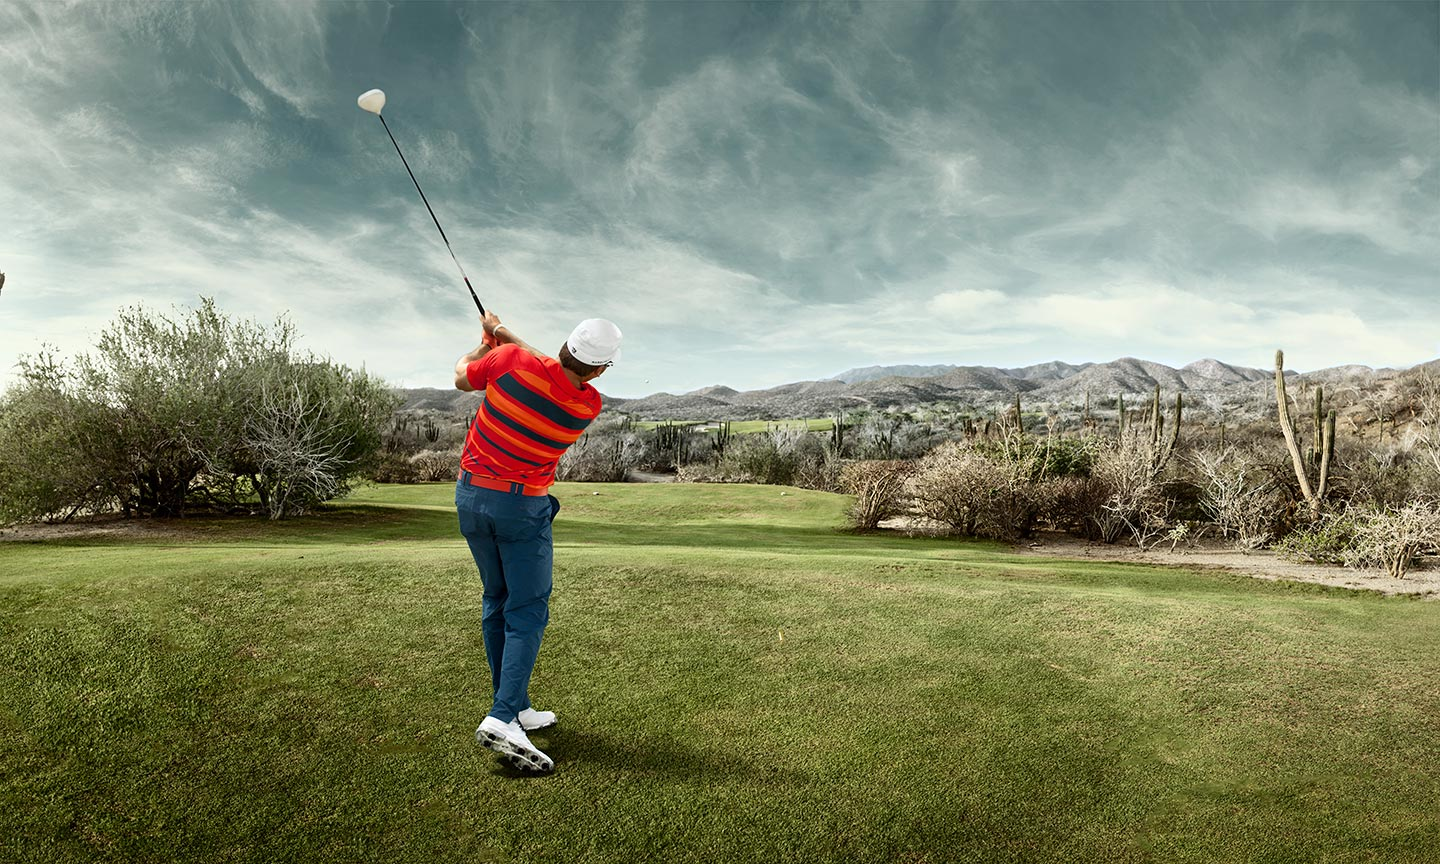 Golfer After Swing Medium Field Shot Behind Background Grey Skies